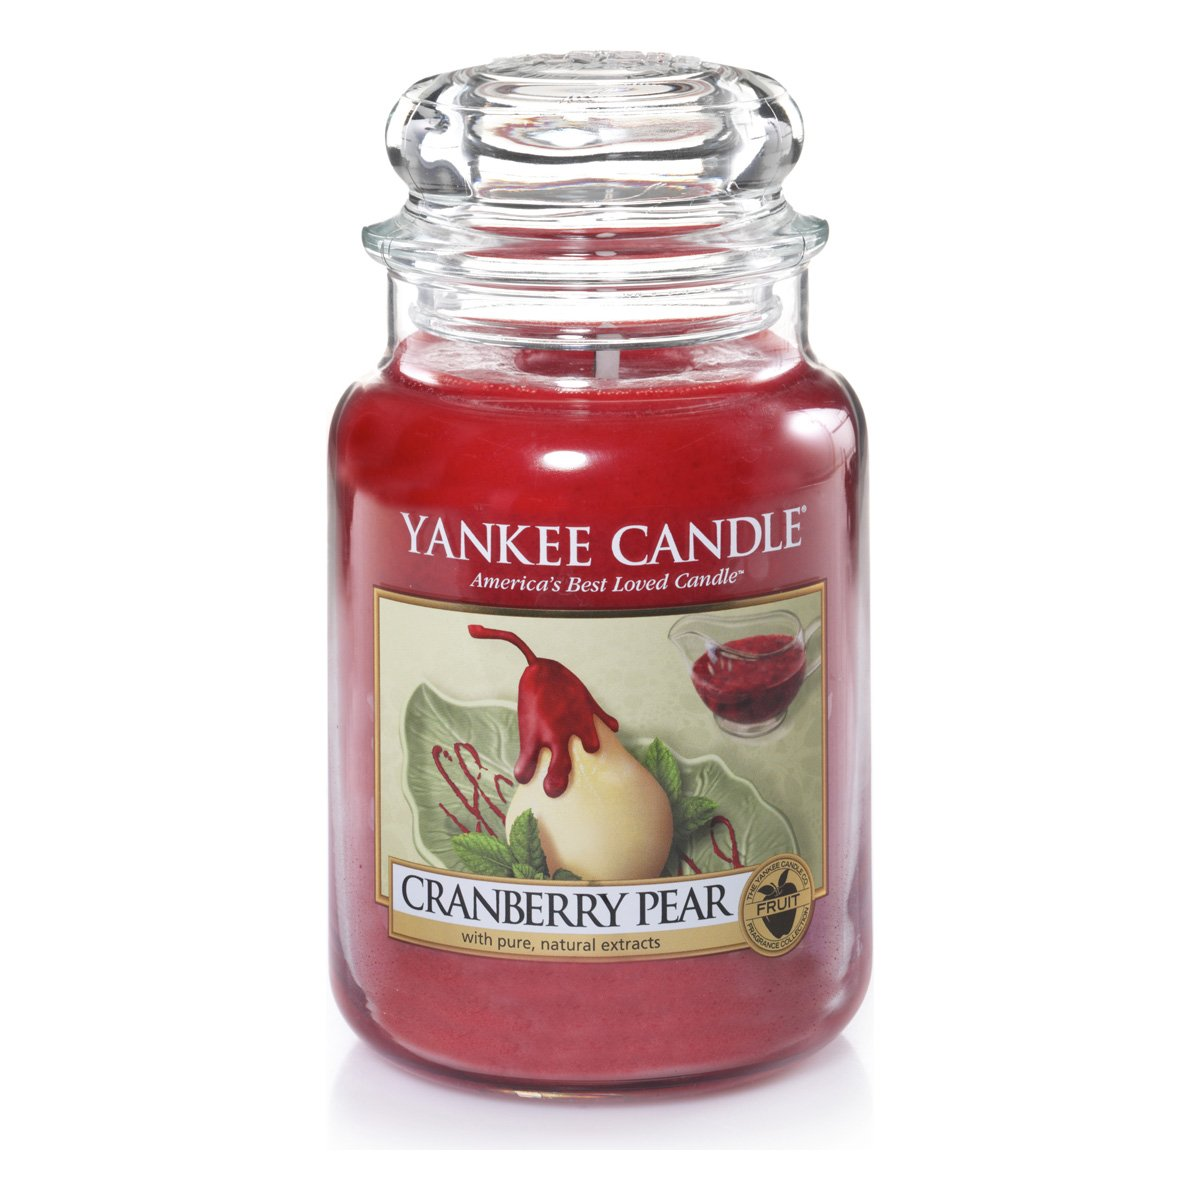 Rosso 10.1X9.8X17.7 Cm Vetro Yankee Candle 1305818E Cranberry Pear Candele In Giara Grande